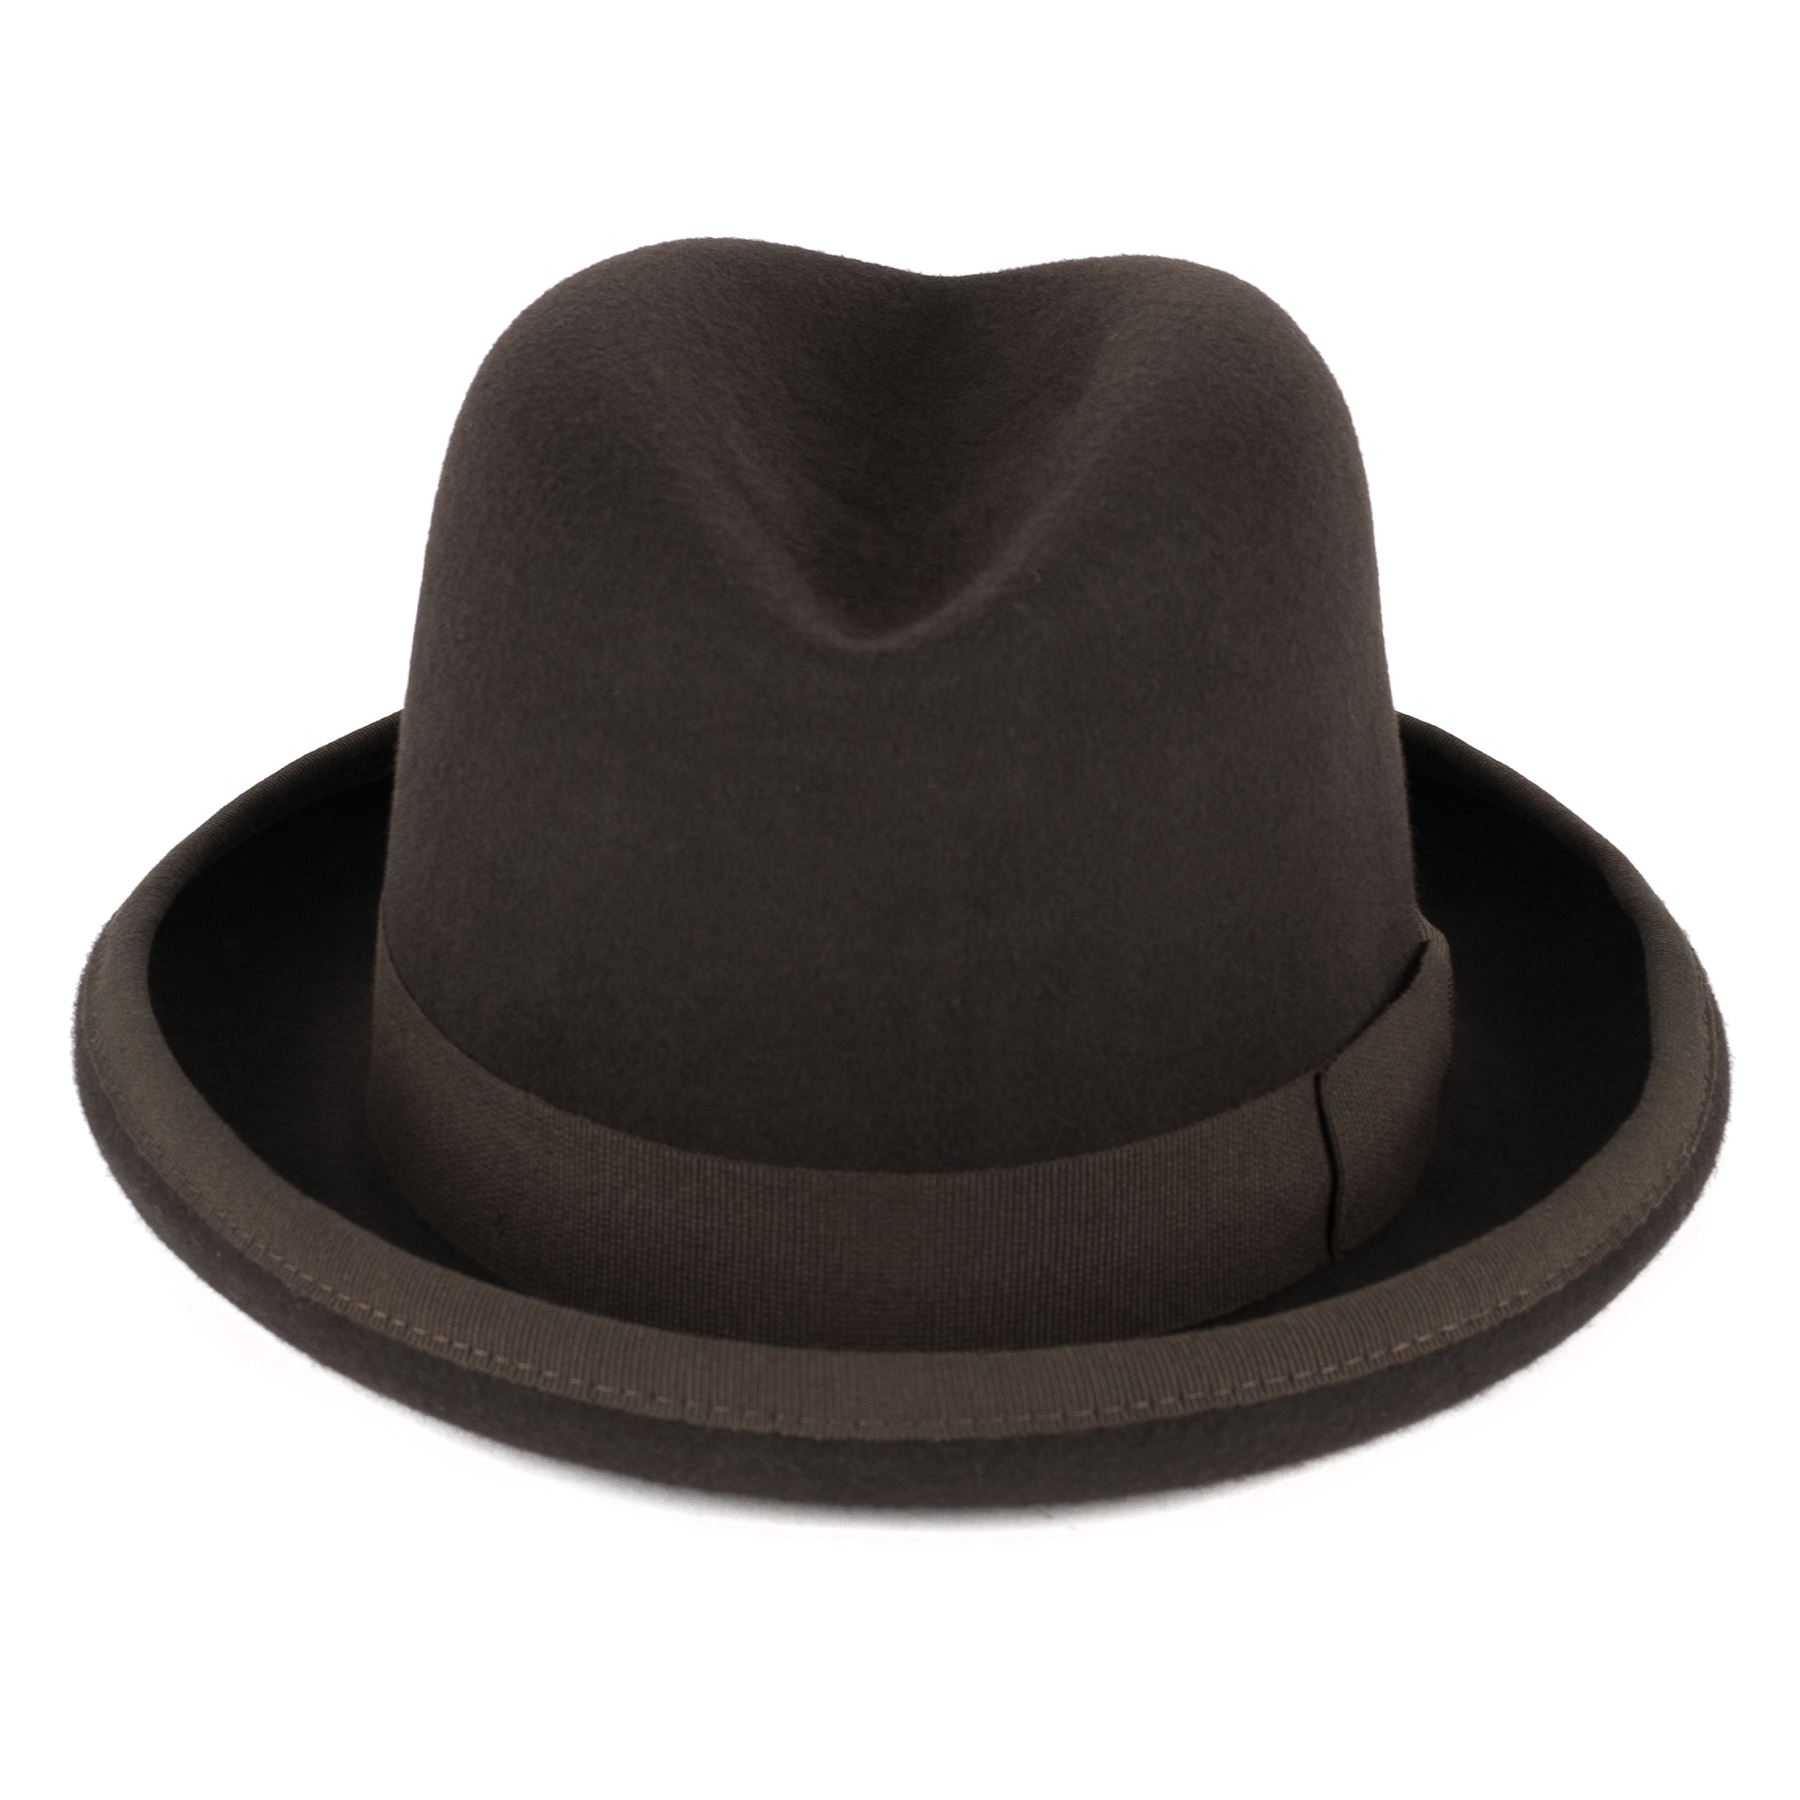 Zakira Men S Homburg Hat In Fine Wool Felt Handmade In Italy Ebay Matching ribbon and band around the bottom of the crown! details about zakira men s homburg hat in fine wool felt handmade in italy